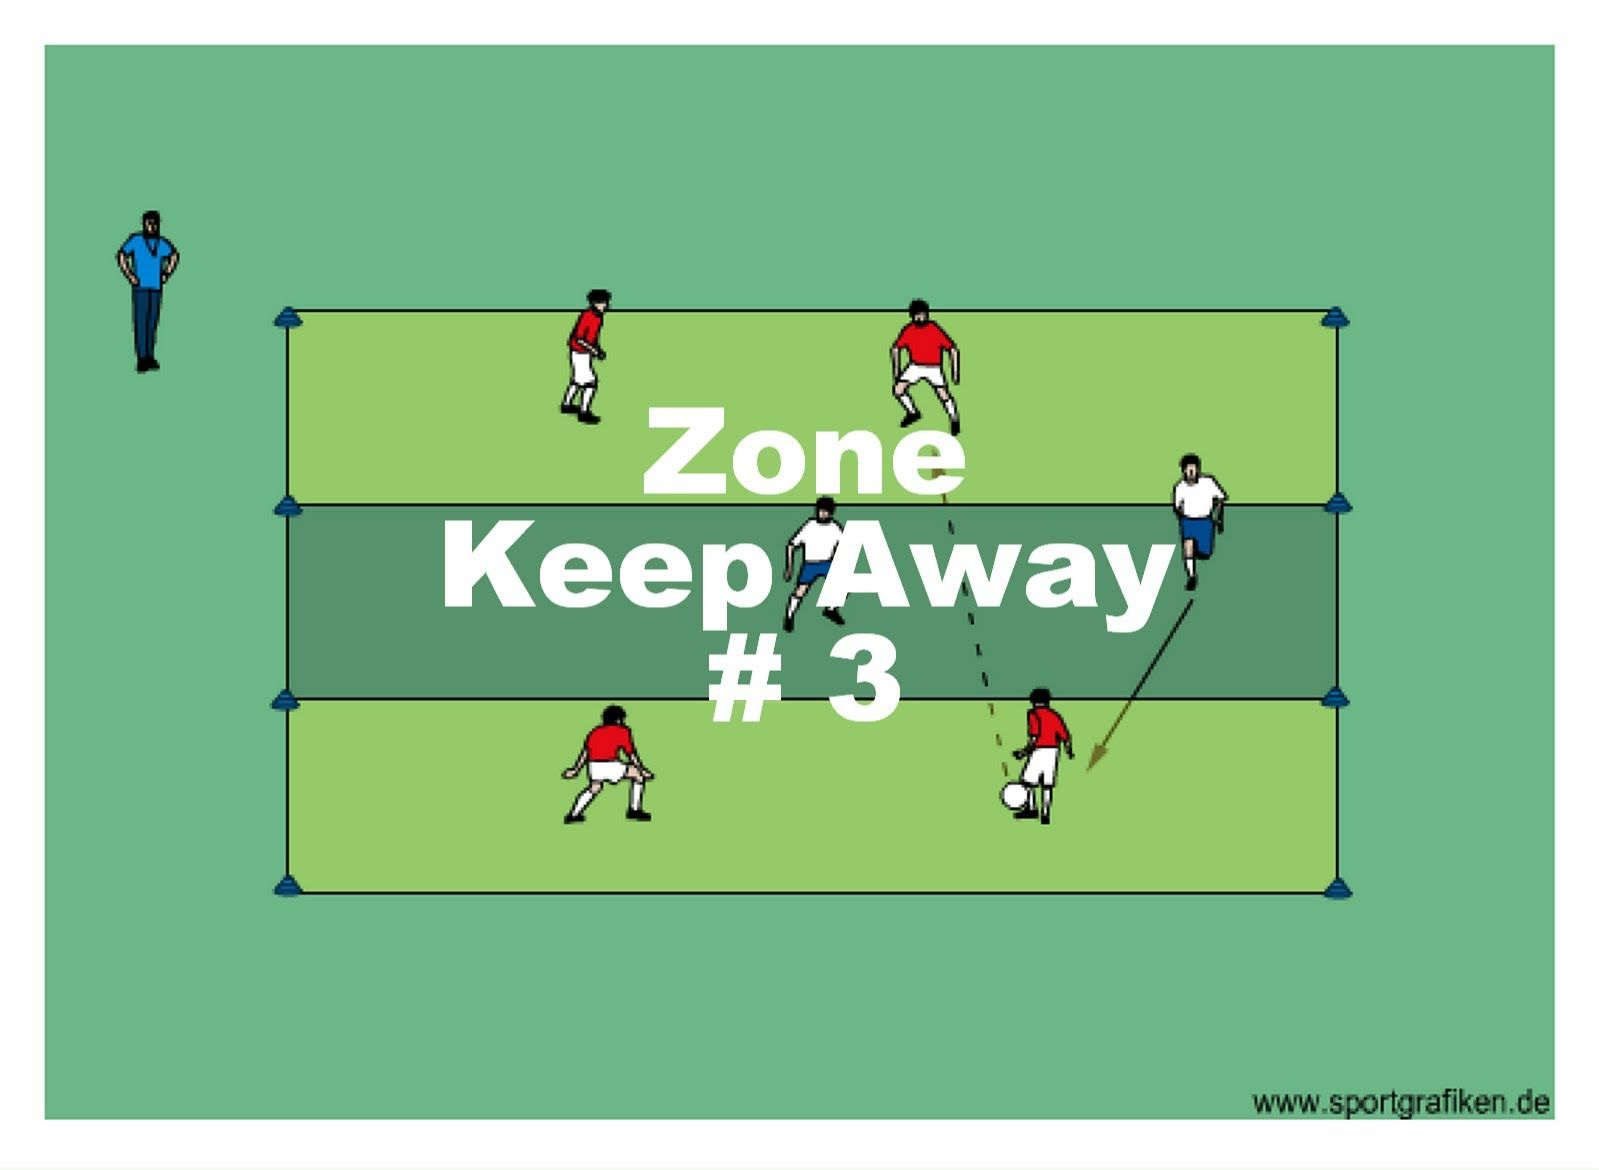 Advanced Moving Soccer Passing Drills Advanced Moving Soccer Passing Drills Soccer Passing Drills Soccer Coaching Drills Coaching Kids Soccer